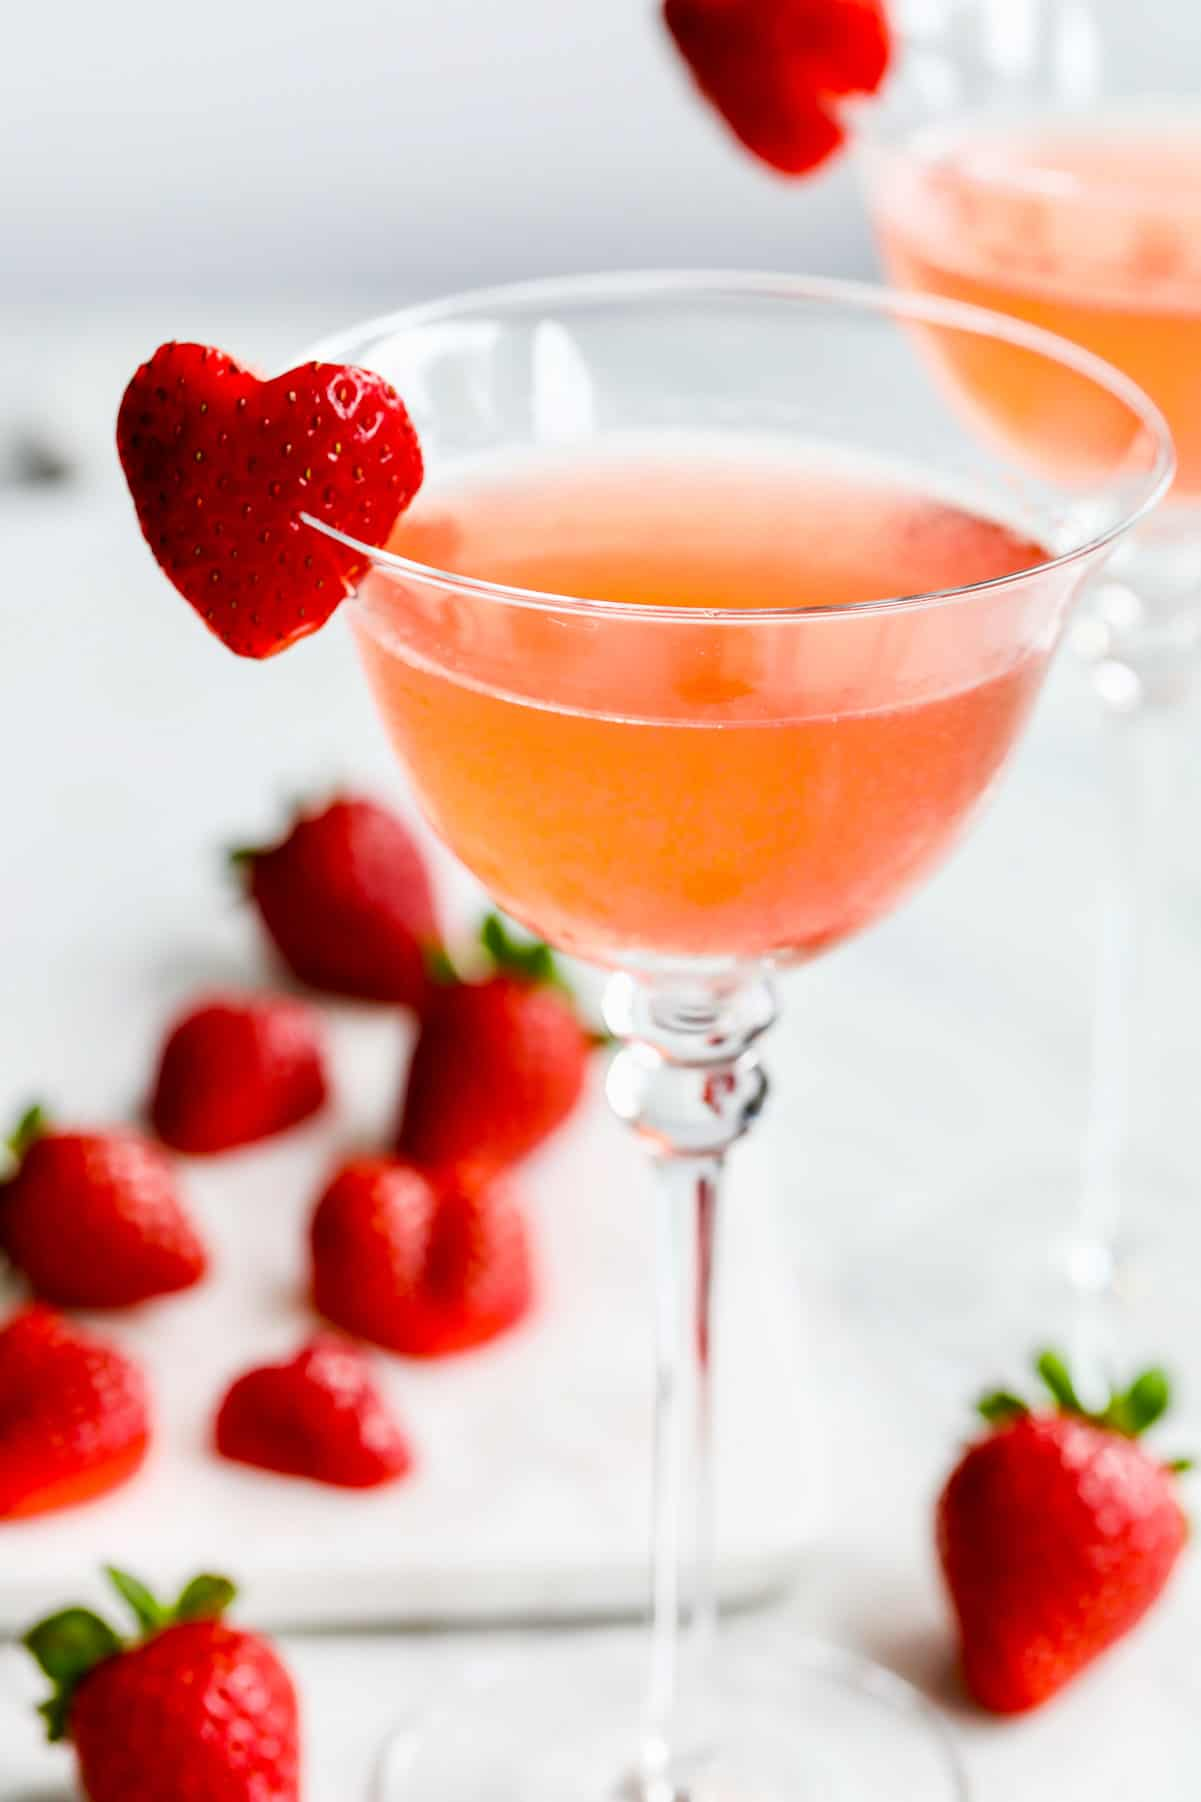 Heart shaped garnish made from strawberry on edge of pink cocktail.